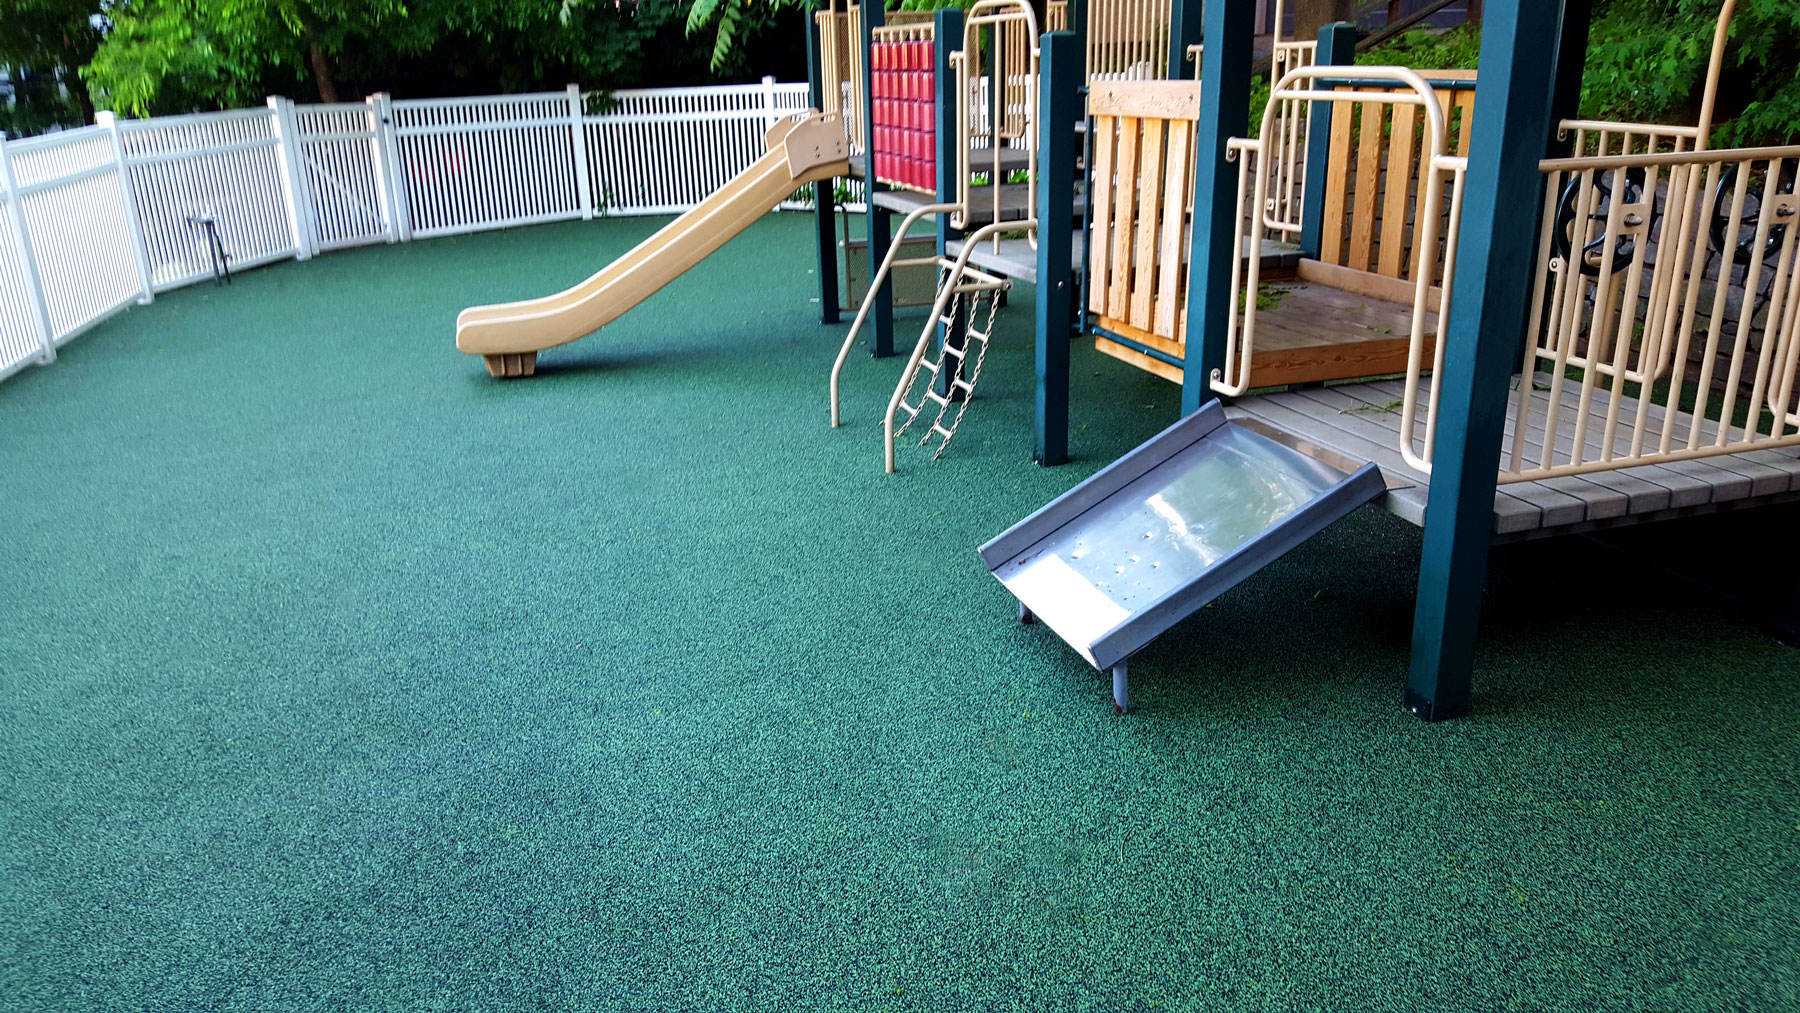 New Playground Surface For Daycare Adventureturf